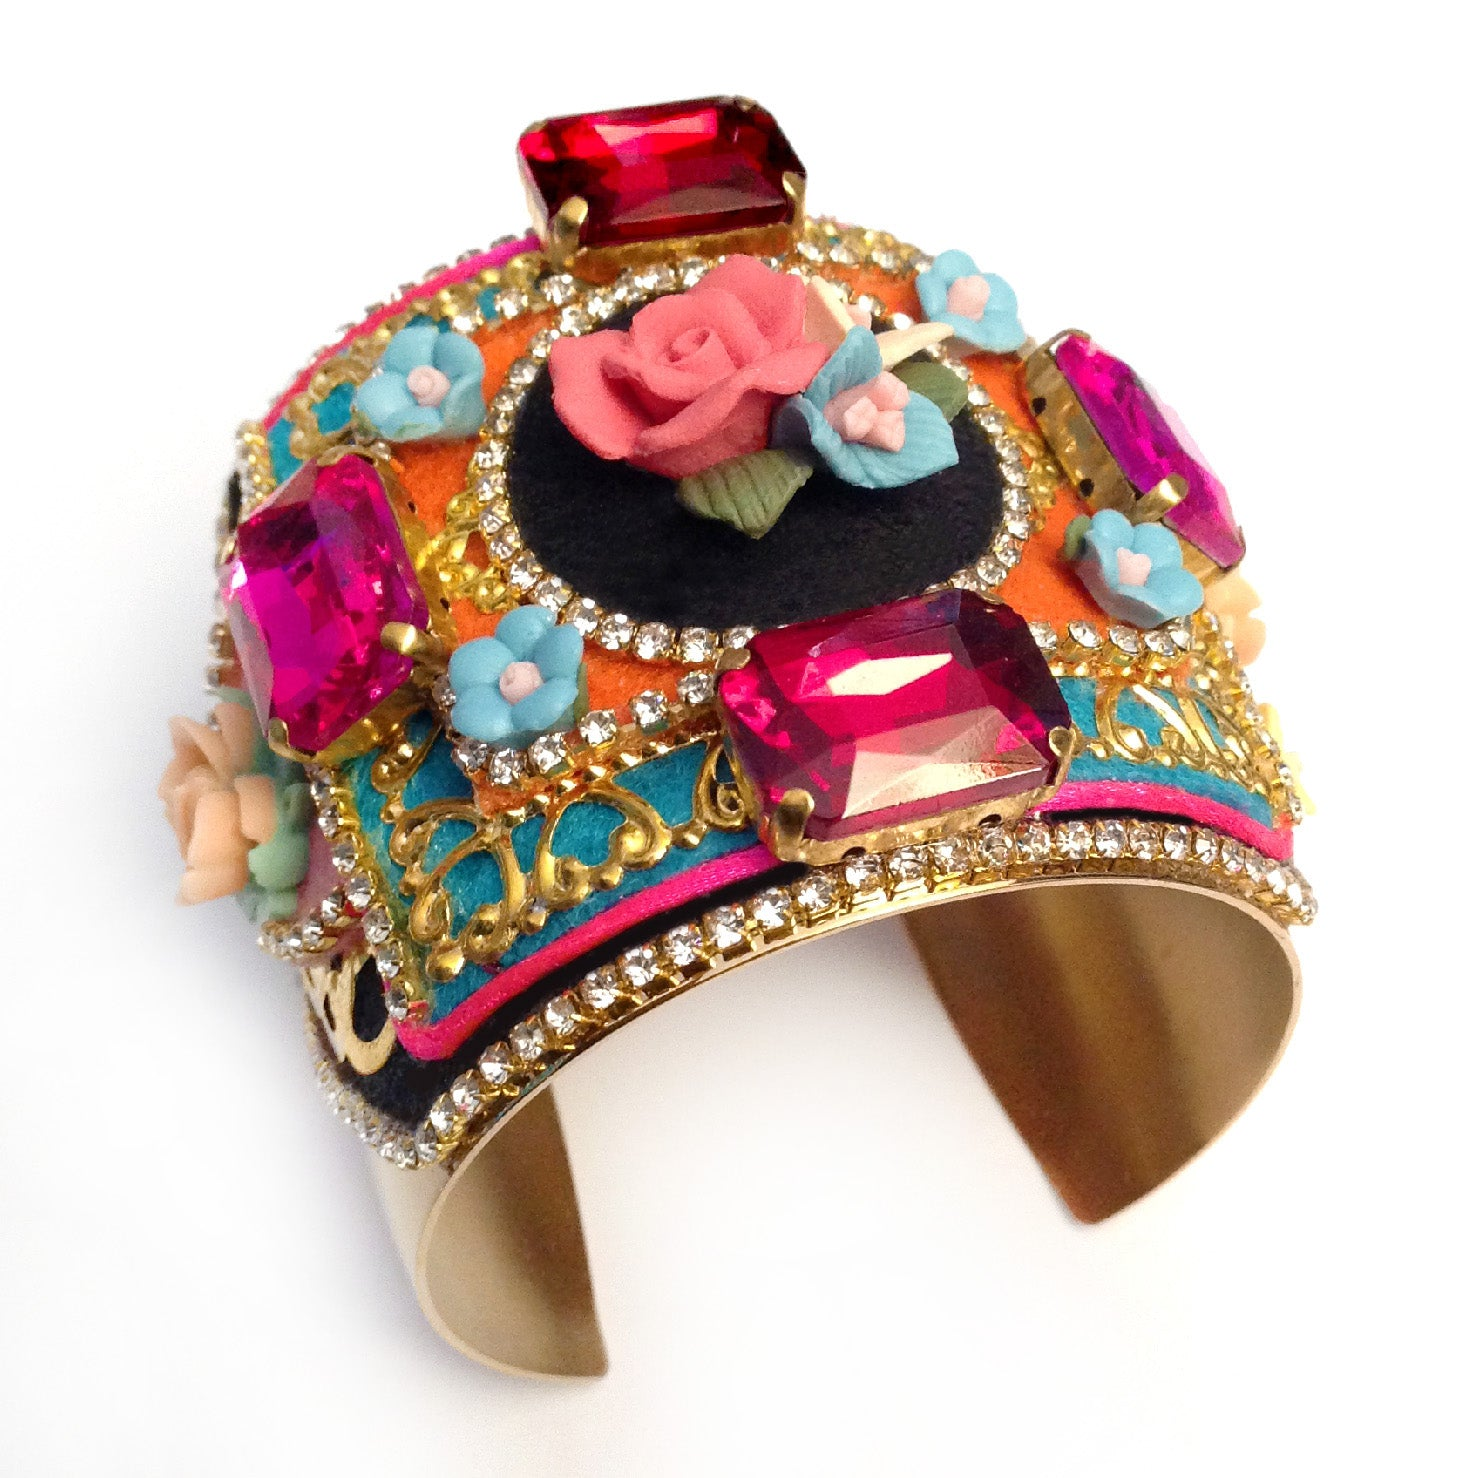 mouchkine-jewelry-stylish-trendy-floral-chic-bangle-bracelet